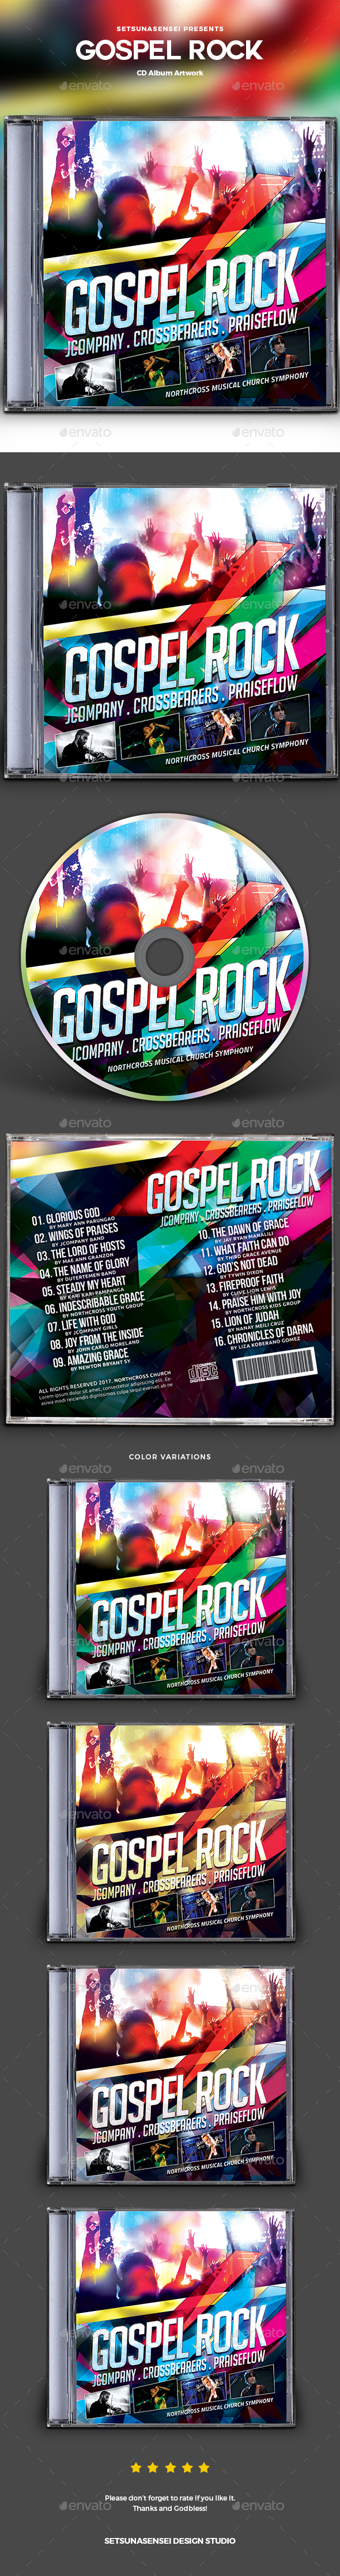 Gospel Rock CD Album Artwork - CD & DVD Artwork Print Templates